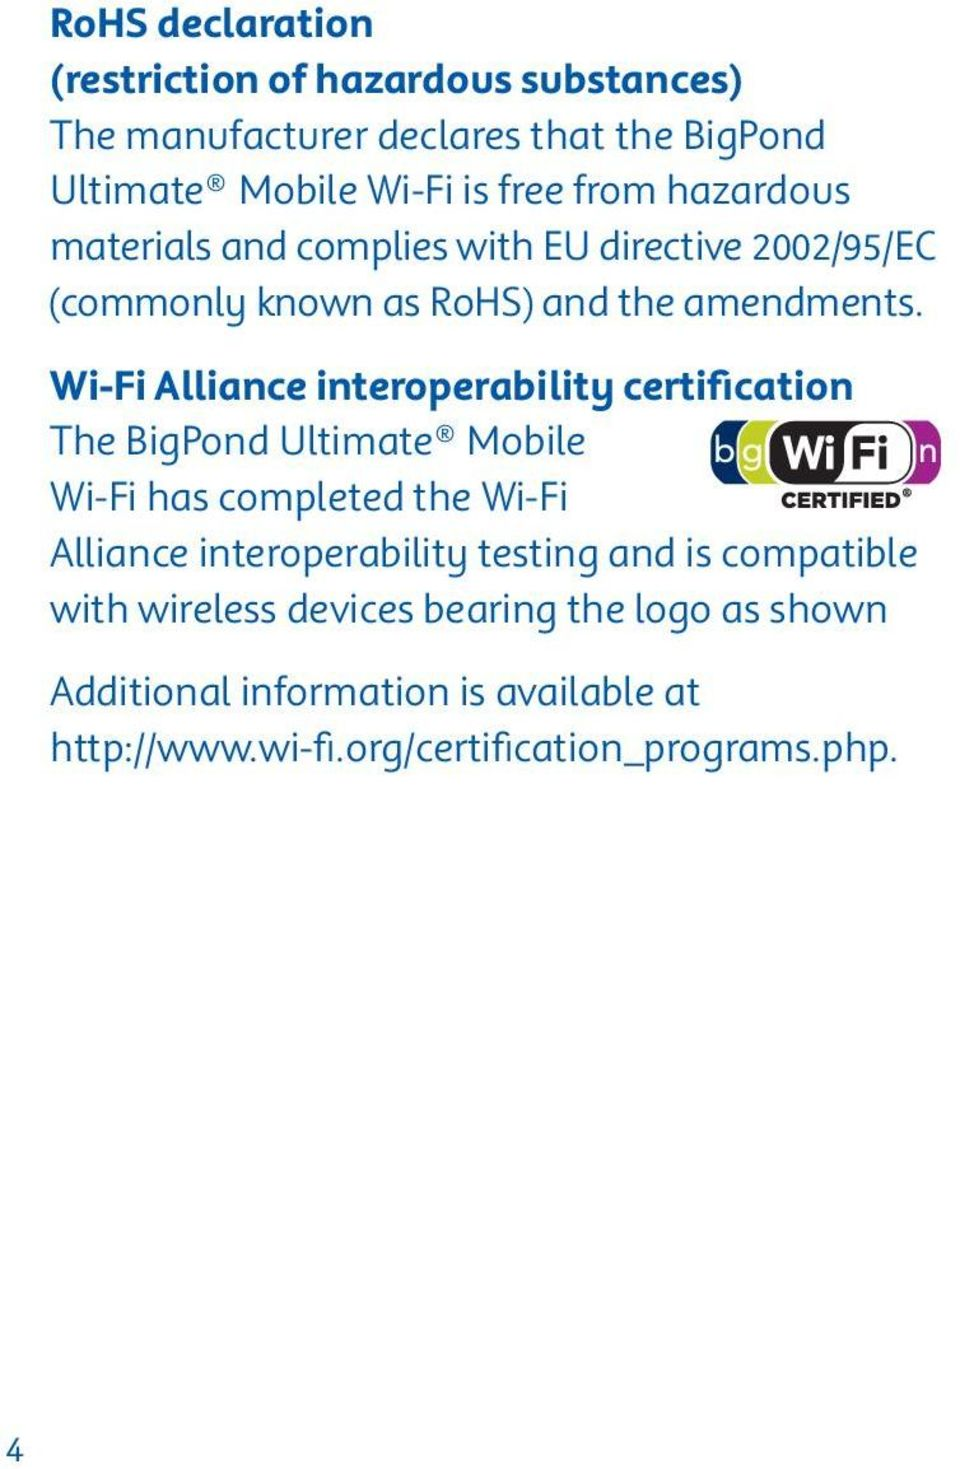 Wi-Fi Alliance interoperability certification The BigPond Ultimate Mobile Wi-Fi has completed the Wi-Fi Alliance interoperability